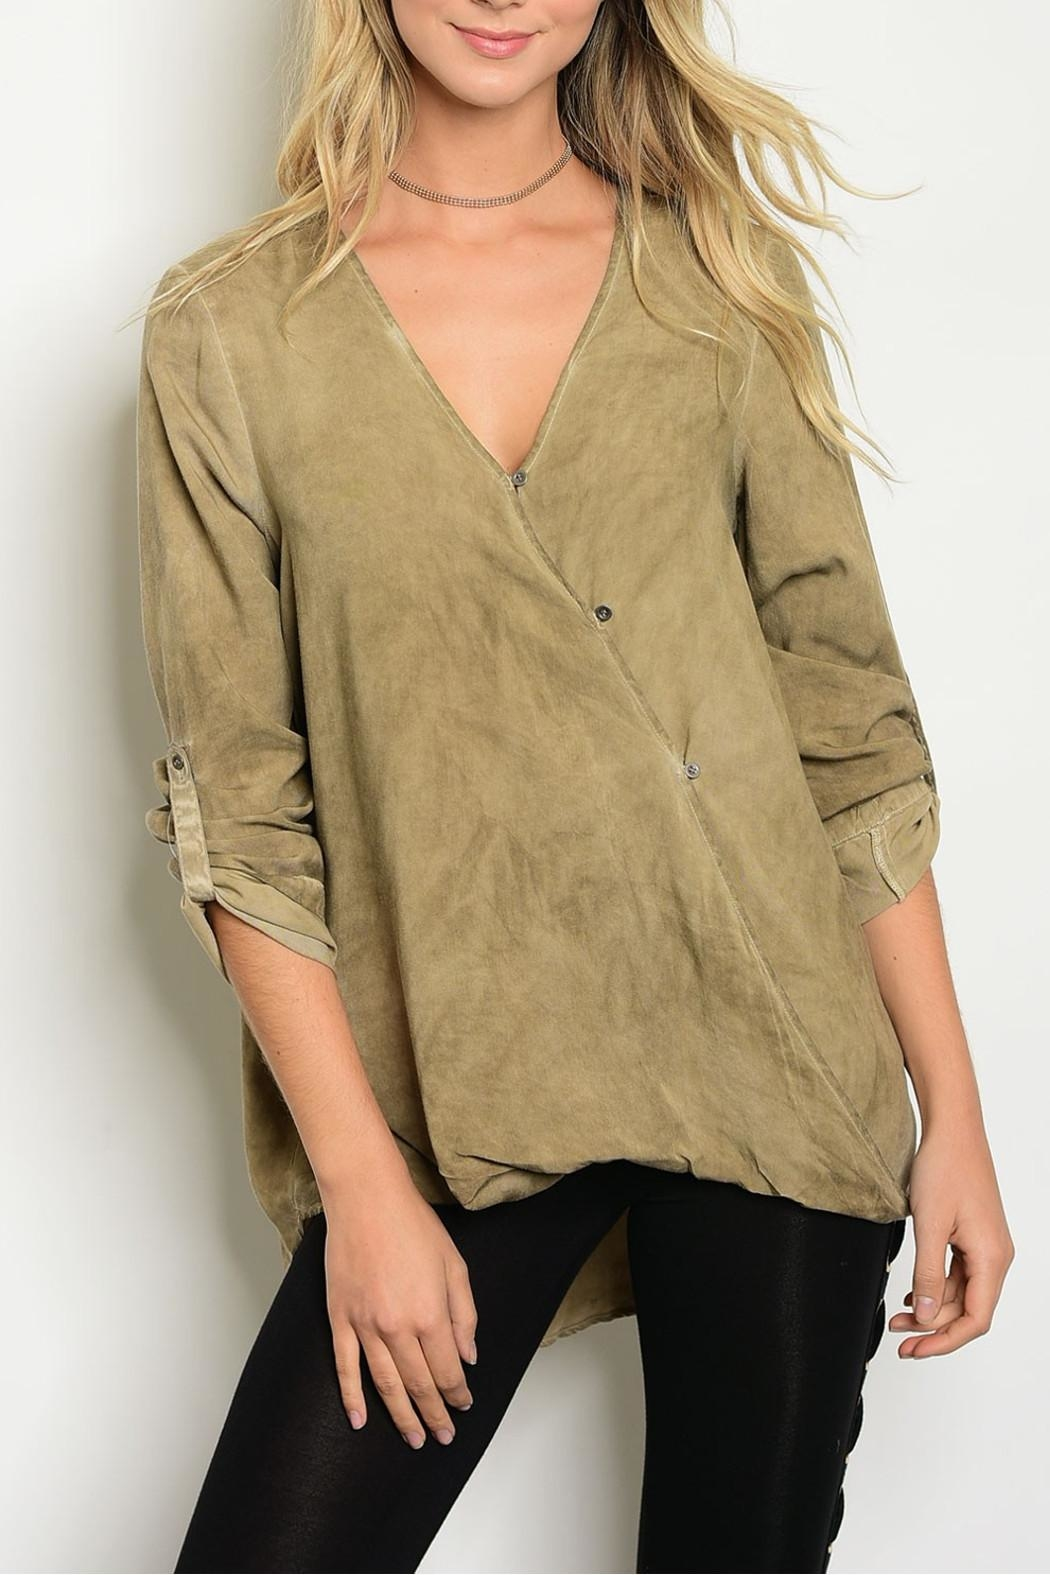 LoveRiche Acid Taupe Blouse - Main Image